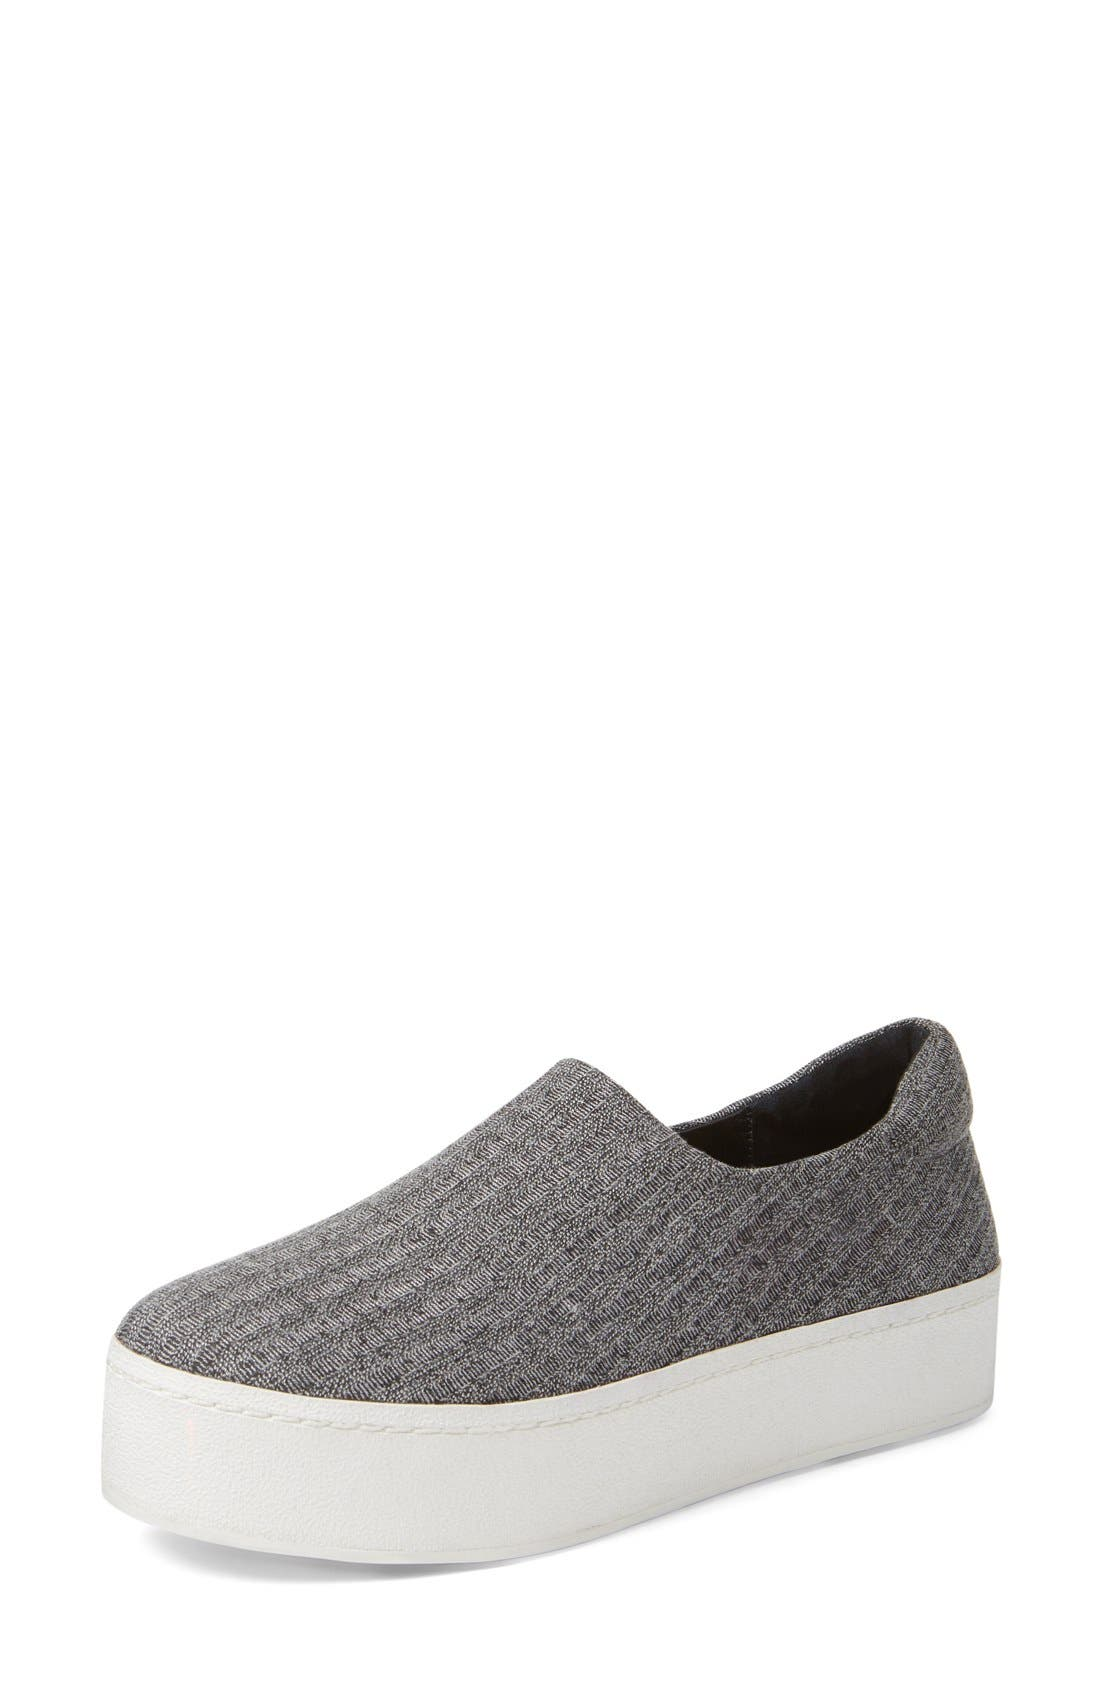 Main Image - Opening Ceremony Cici Ribbed Jersey Platform Sneaker (Women)